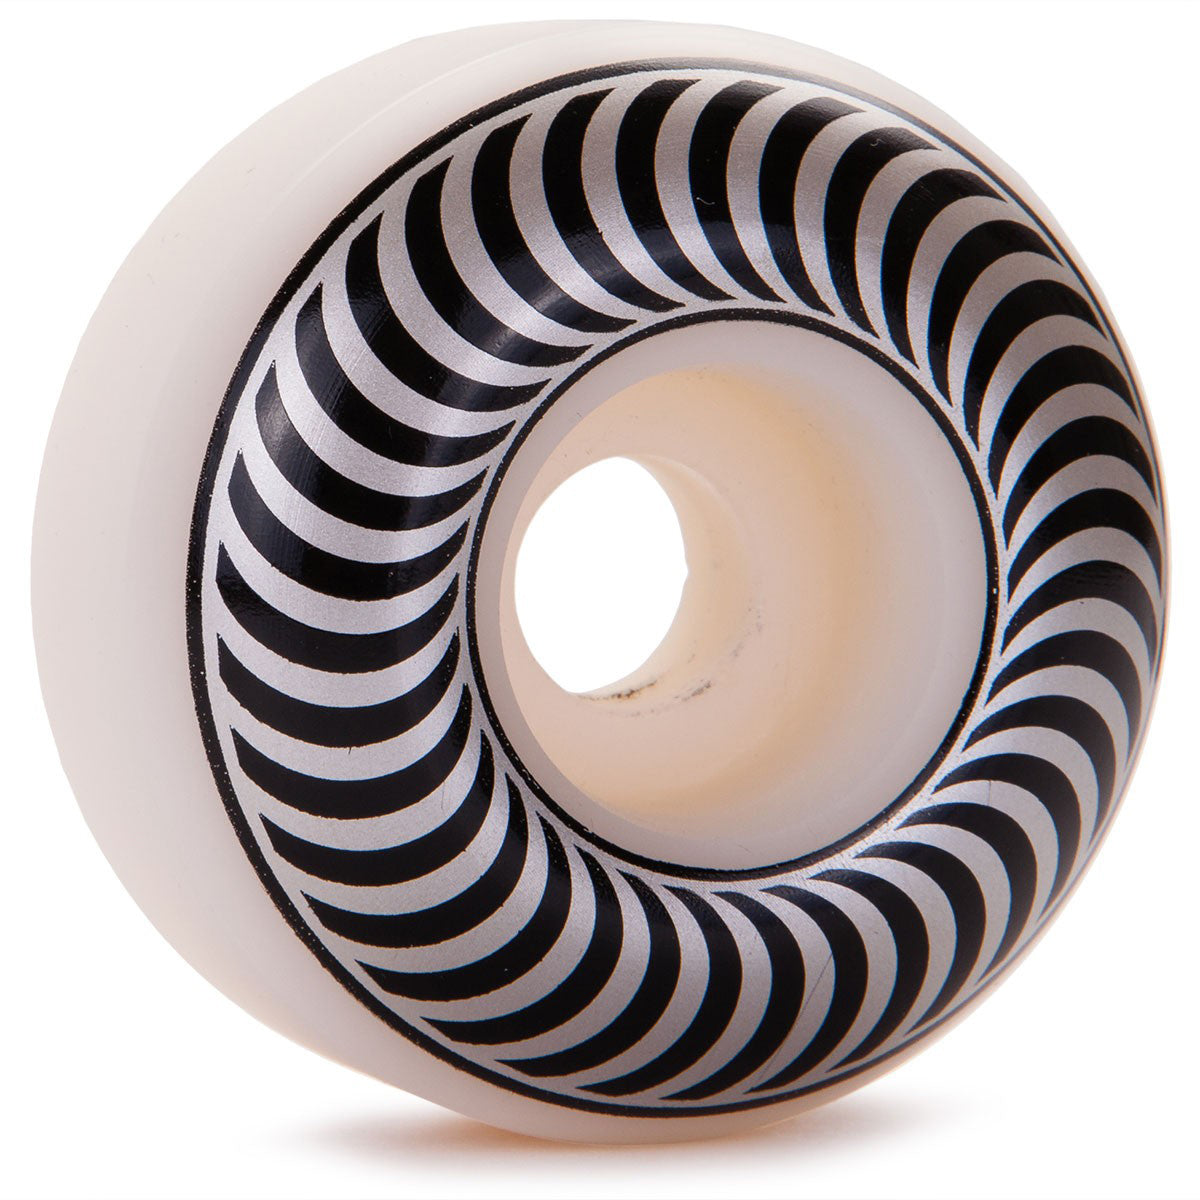 Spitfire Wheels Classics 54mm